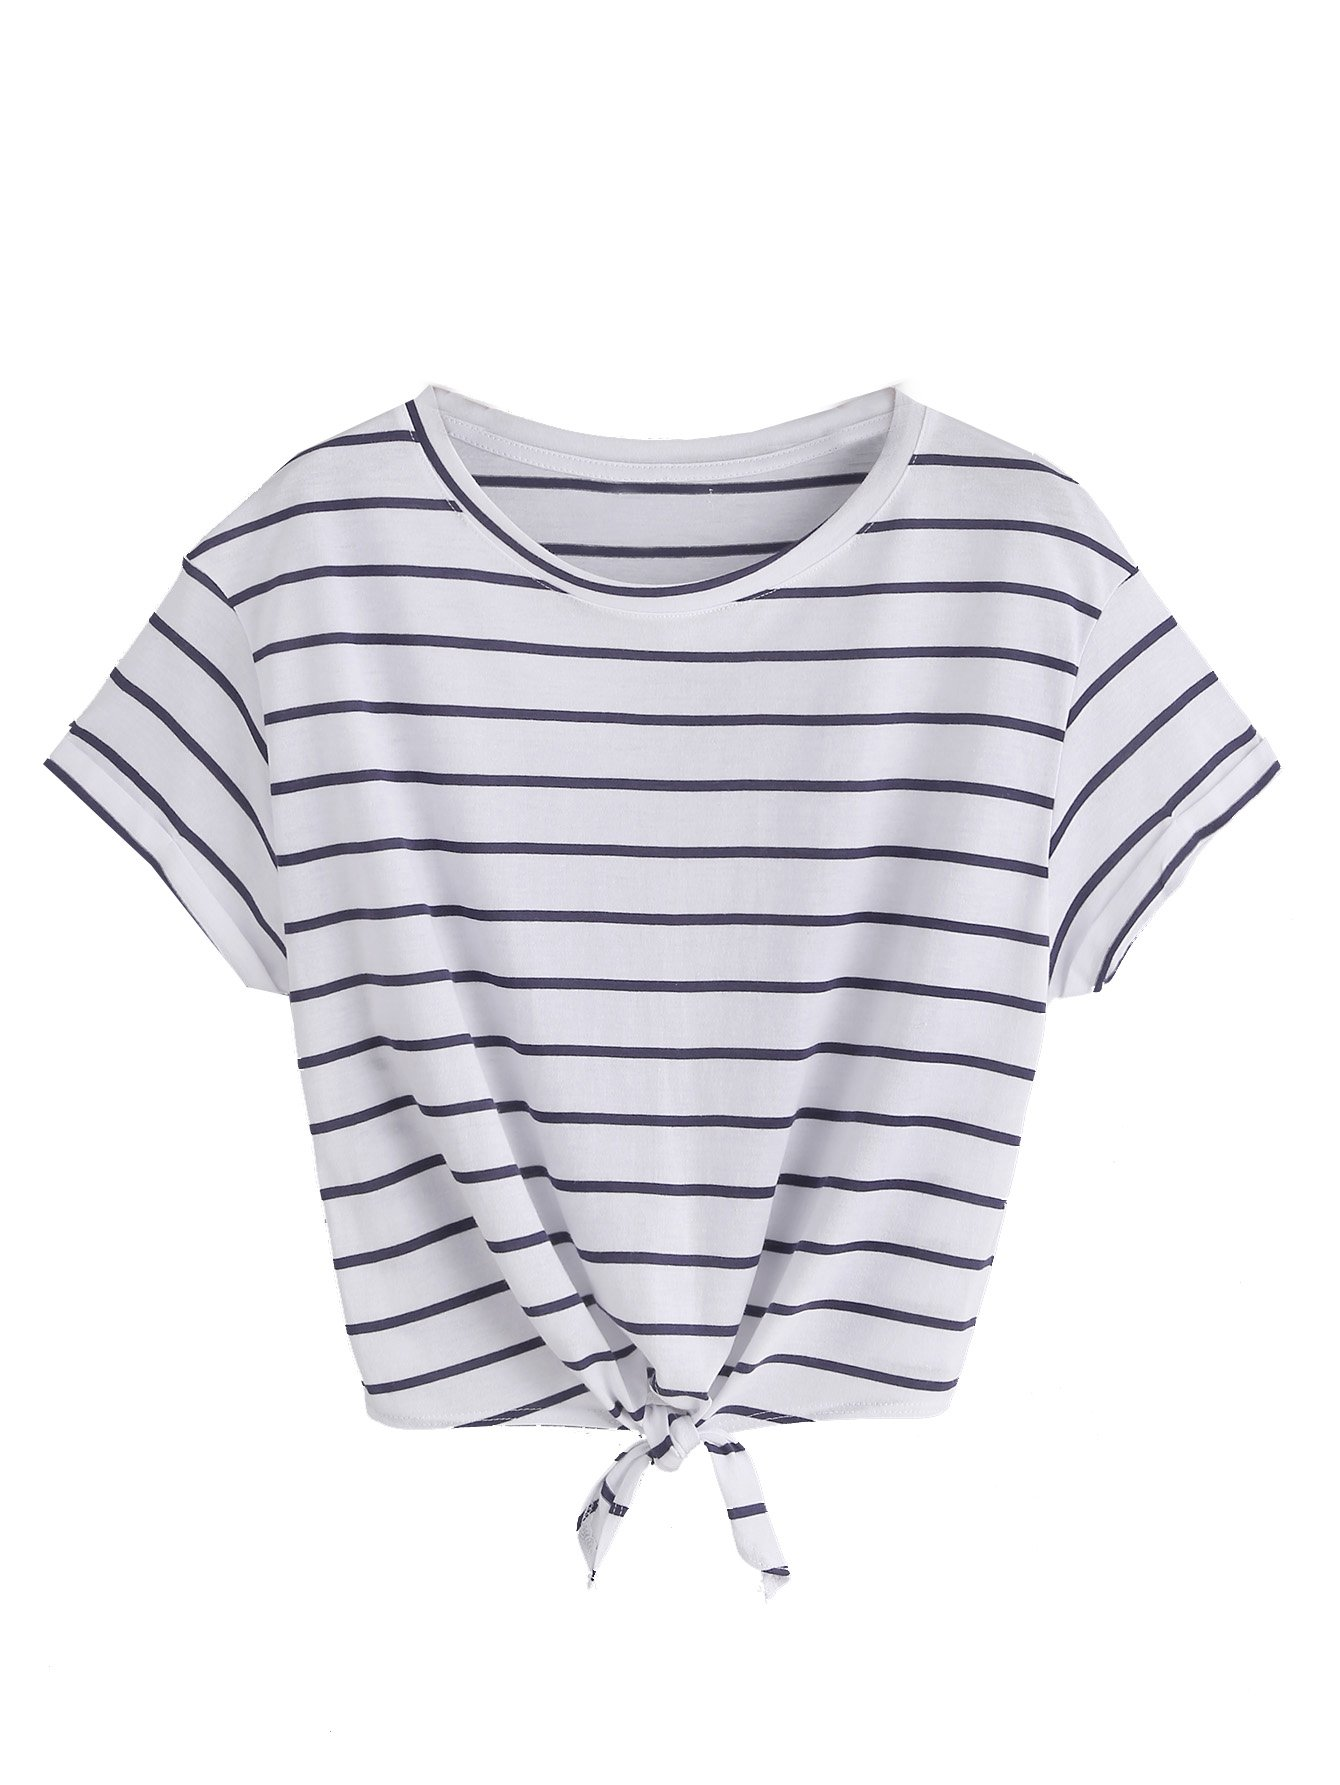 a5b8df755a4 Galleon - ROMWE Women's Knot Front Long Sleeve Striped Crop Top Tee T-shirt,  Blue & White, Large(US8-10)